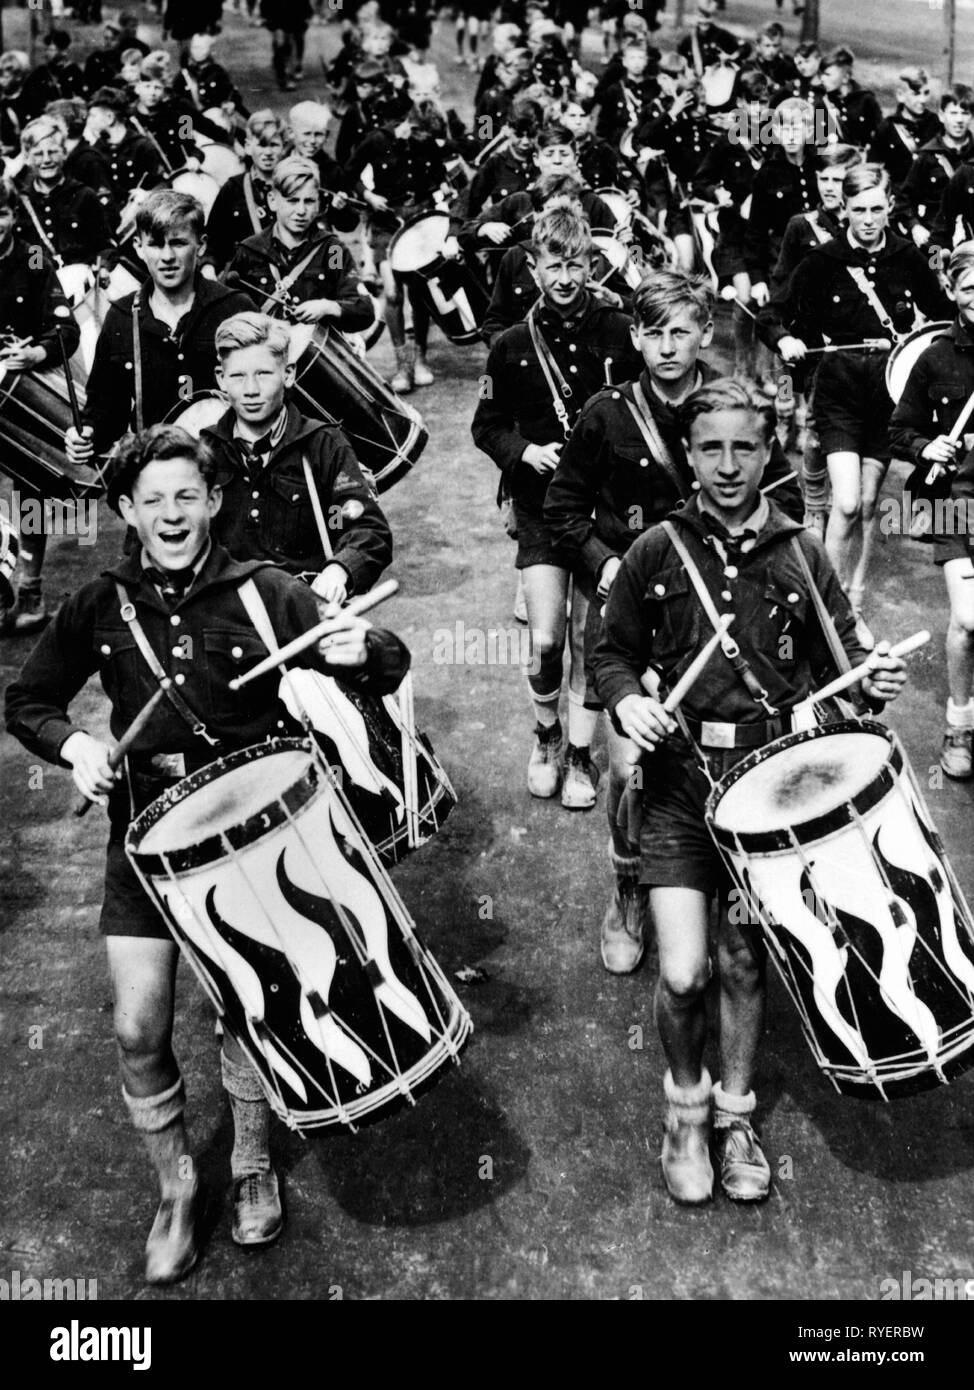 National Socialism, Nuremberg Rally, 'Reichsparteitag der Freiheit', Nuremberg 10.9.1935-16.9.1935, troop of drummers of the Jungvolk (German Youngsters in the Hitler Youth), Additional-Rights-Clearance-Info-Not-Available - Stock Image